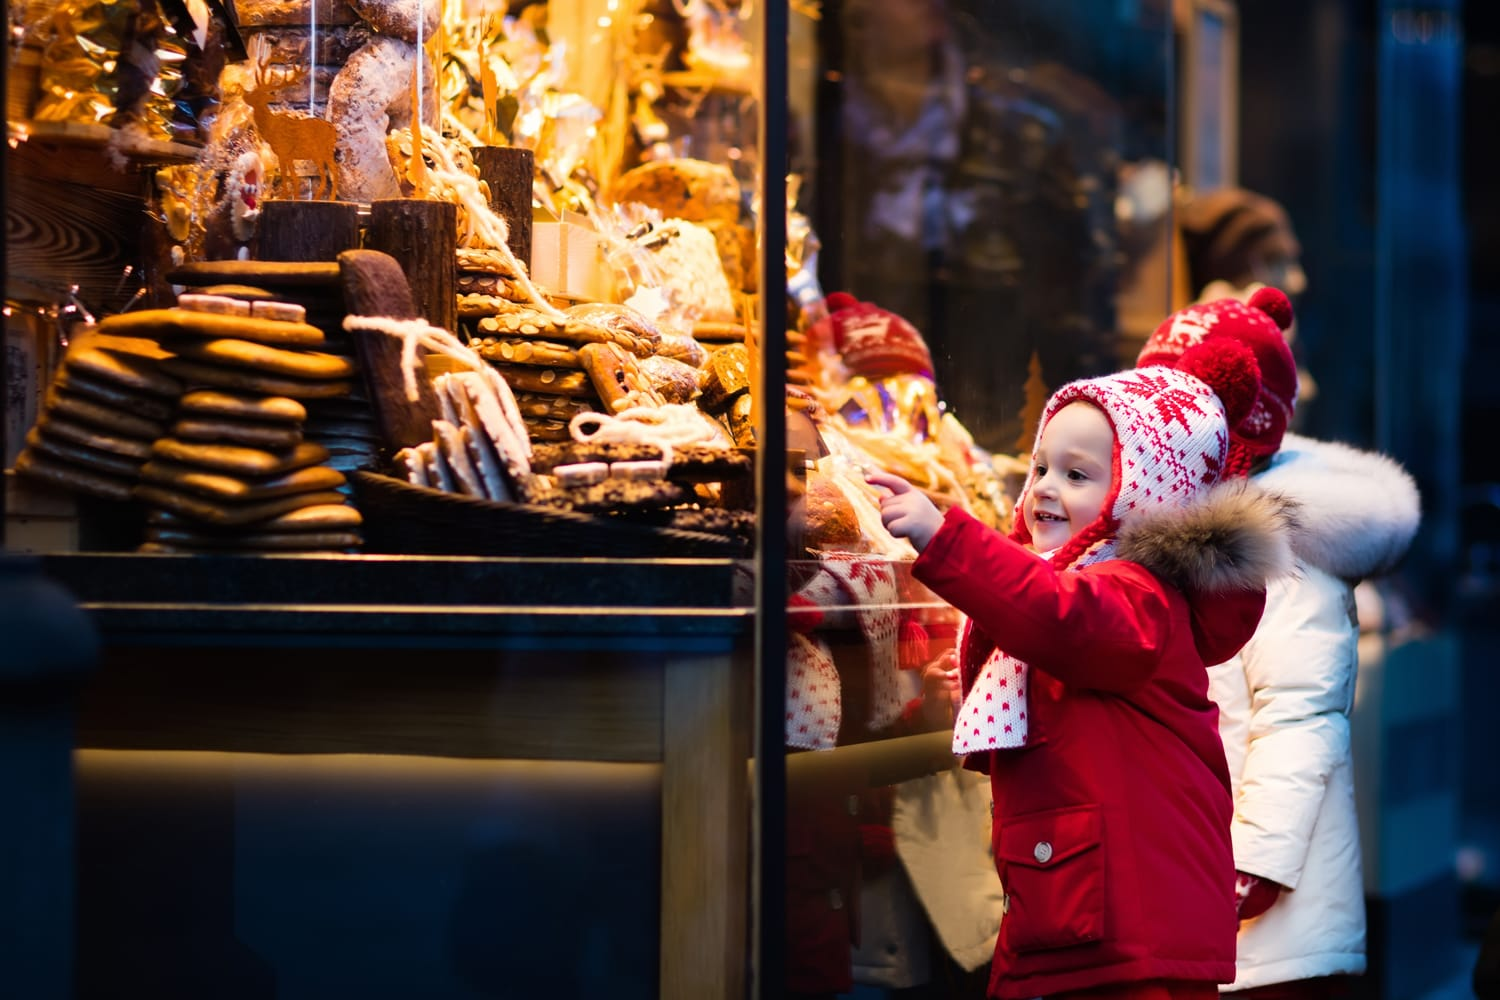 Children window shopping on traditional Christmas market in Germany on snowy winter day